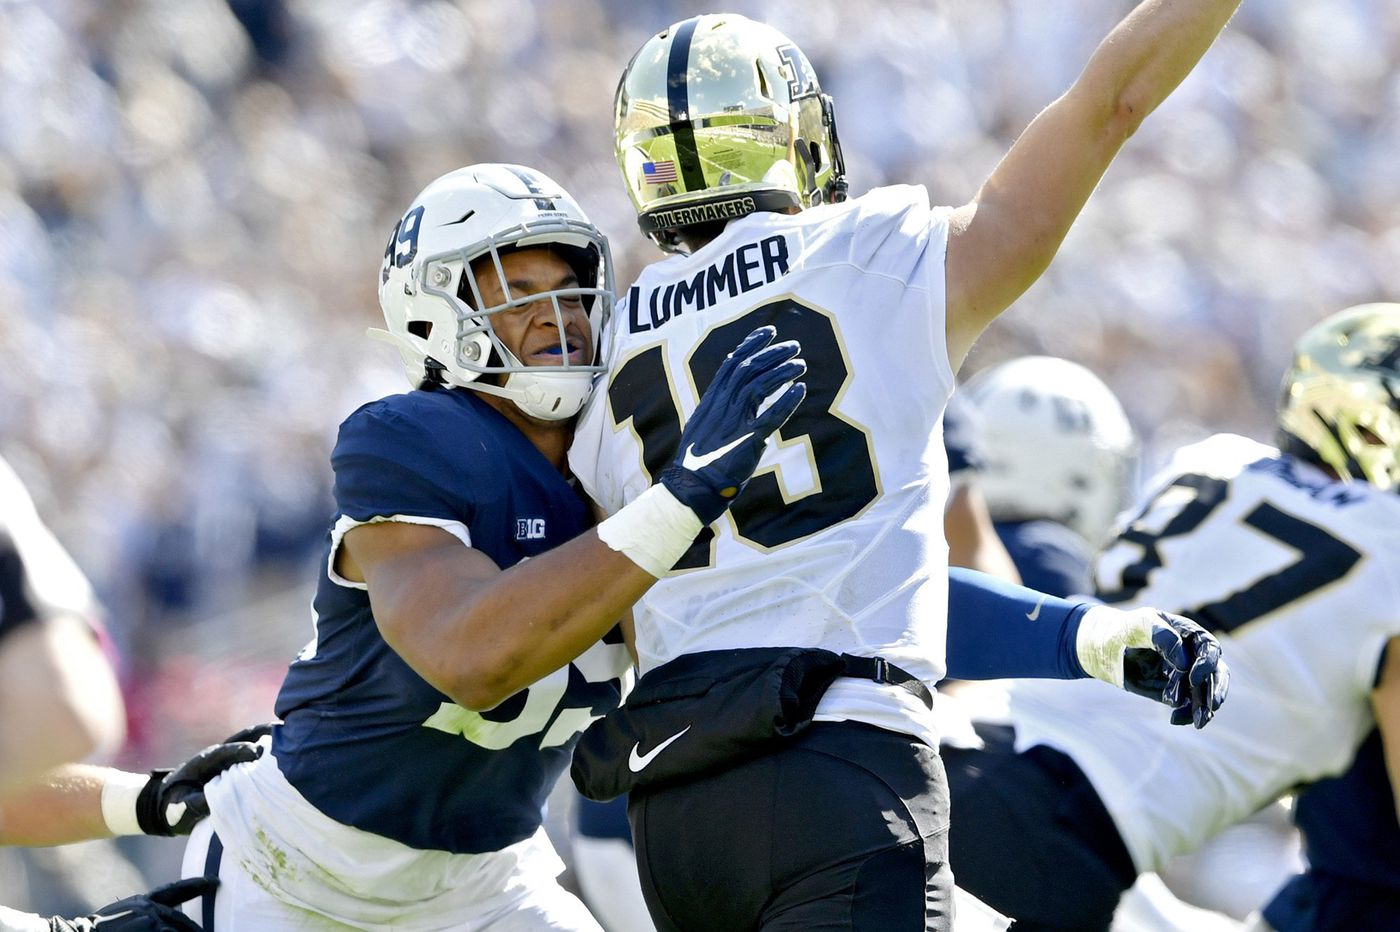 Penn State playing 'championship-level defense' through first five games